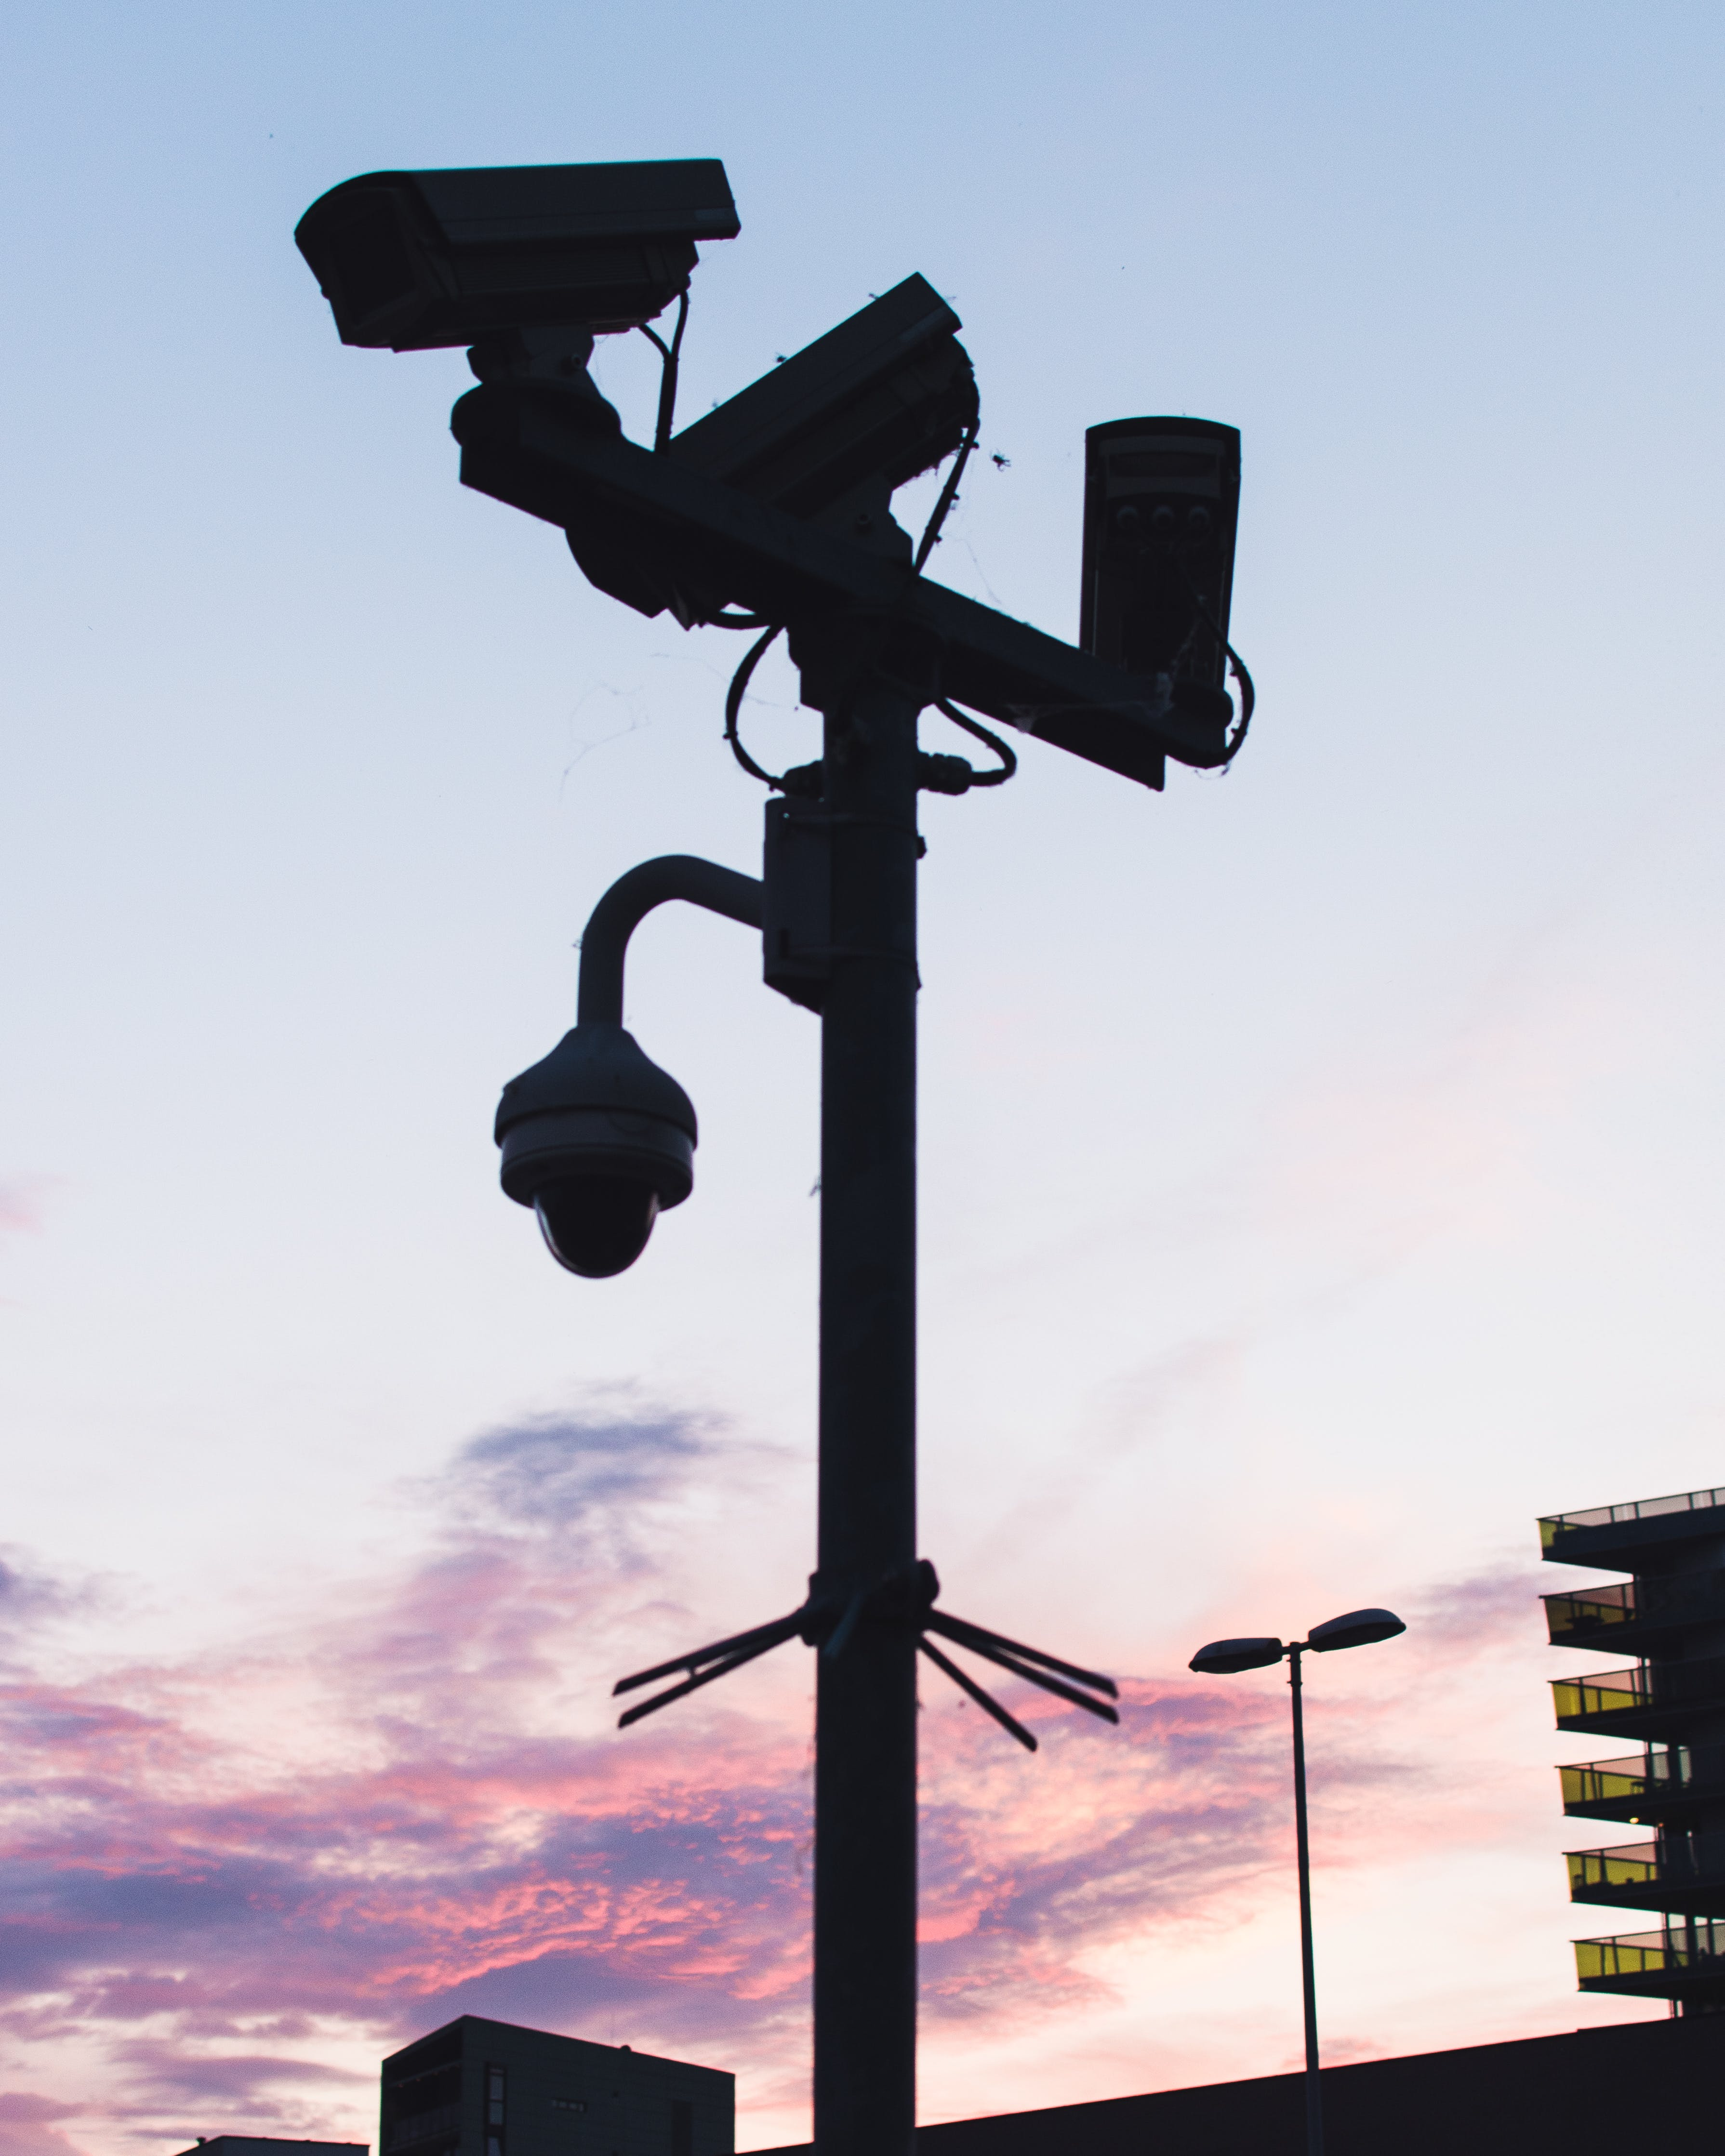 Black Lamp Post with Mounted Cameras